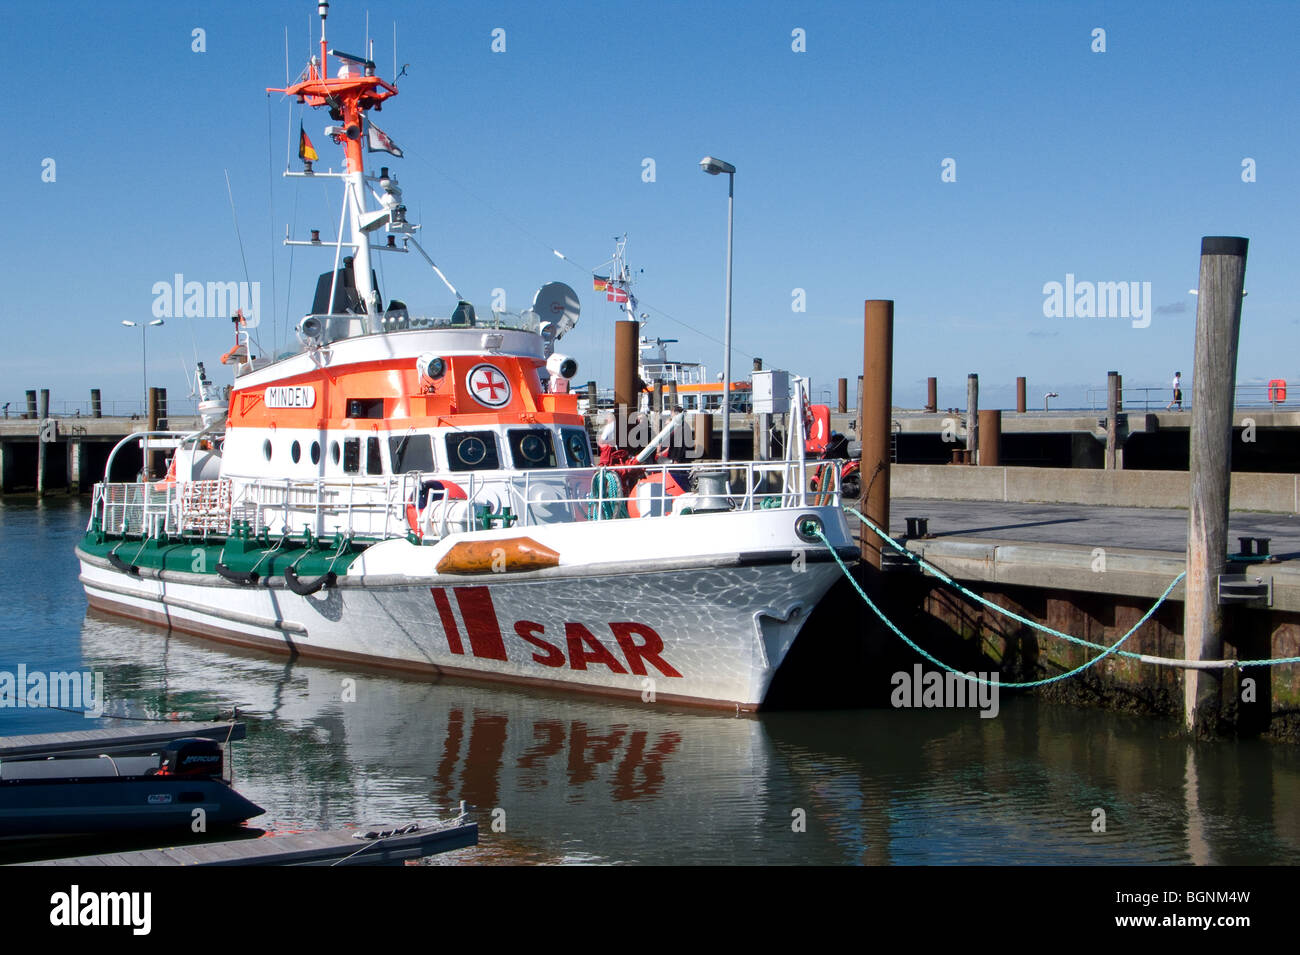 SAR ship at a pier on the island of sylt in northern germany - Stock Image